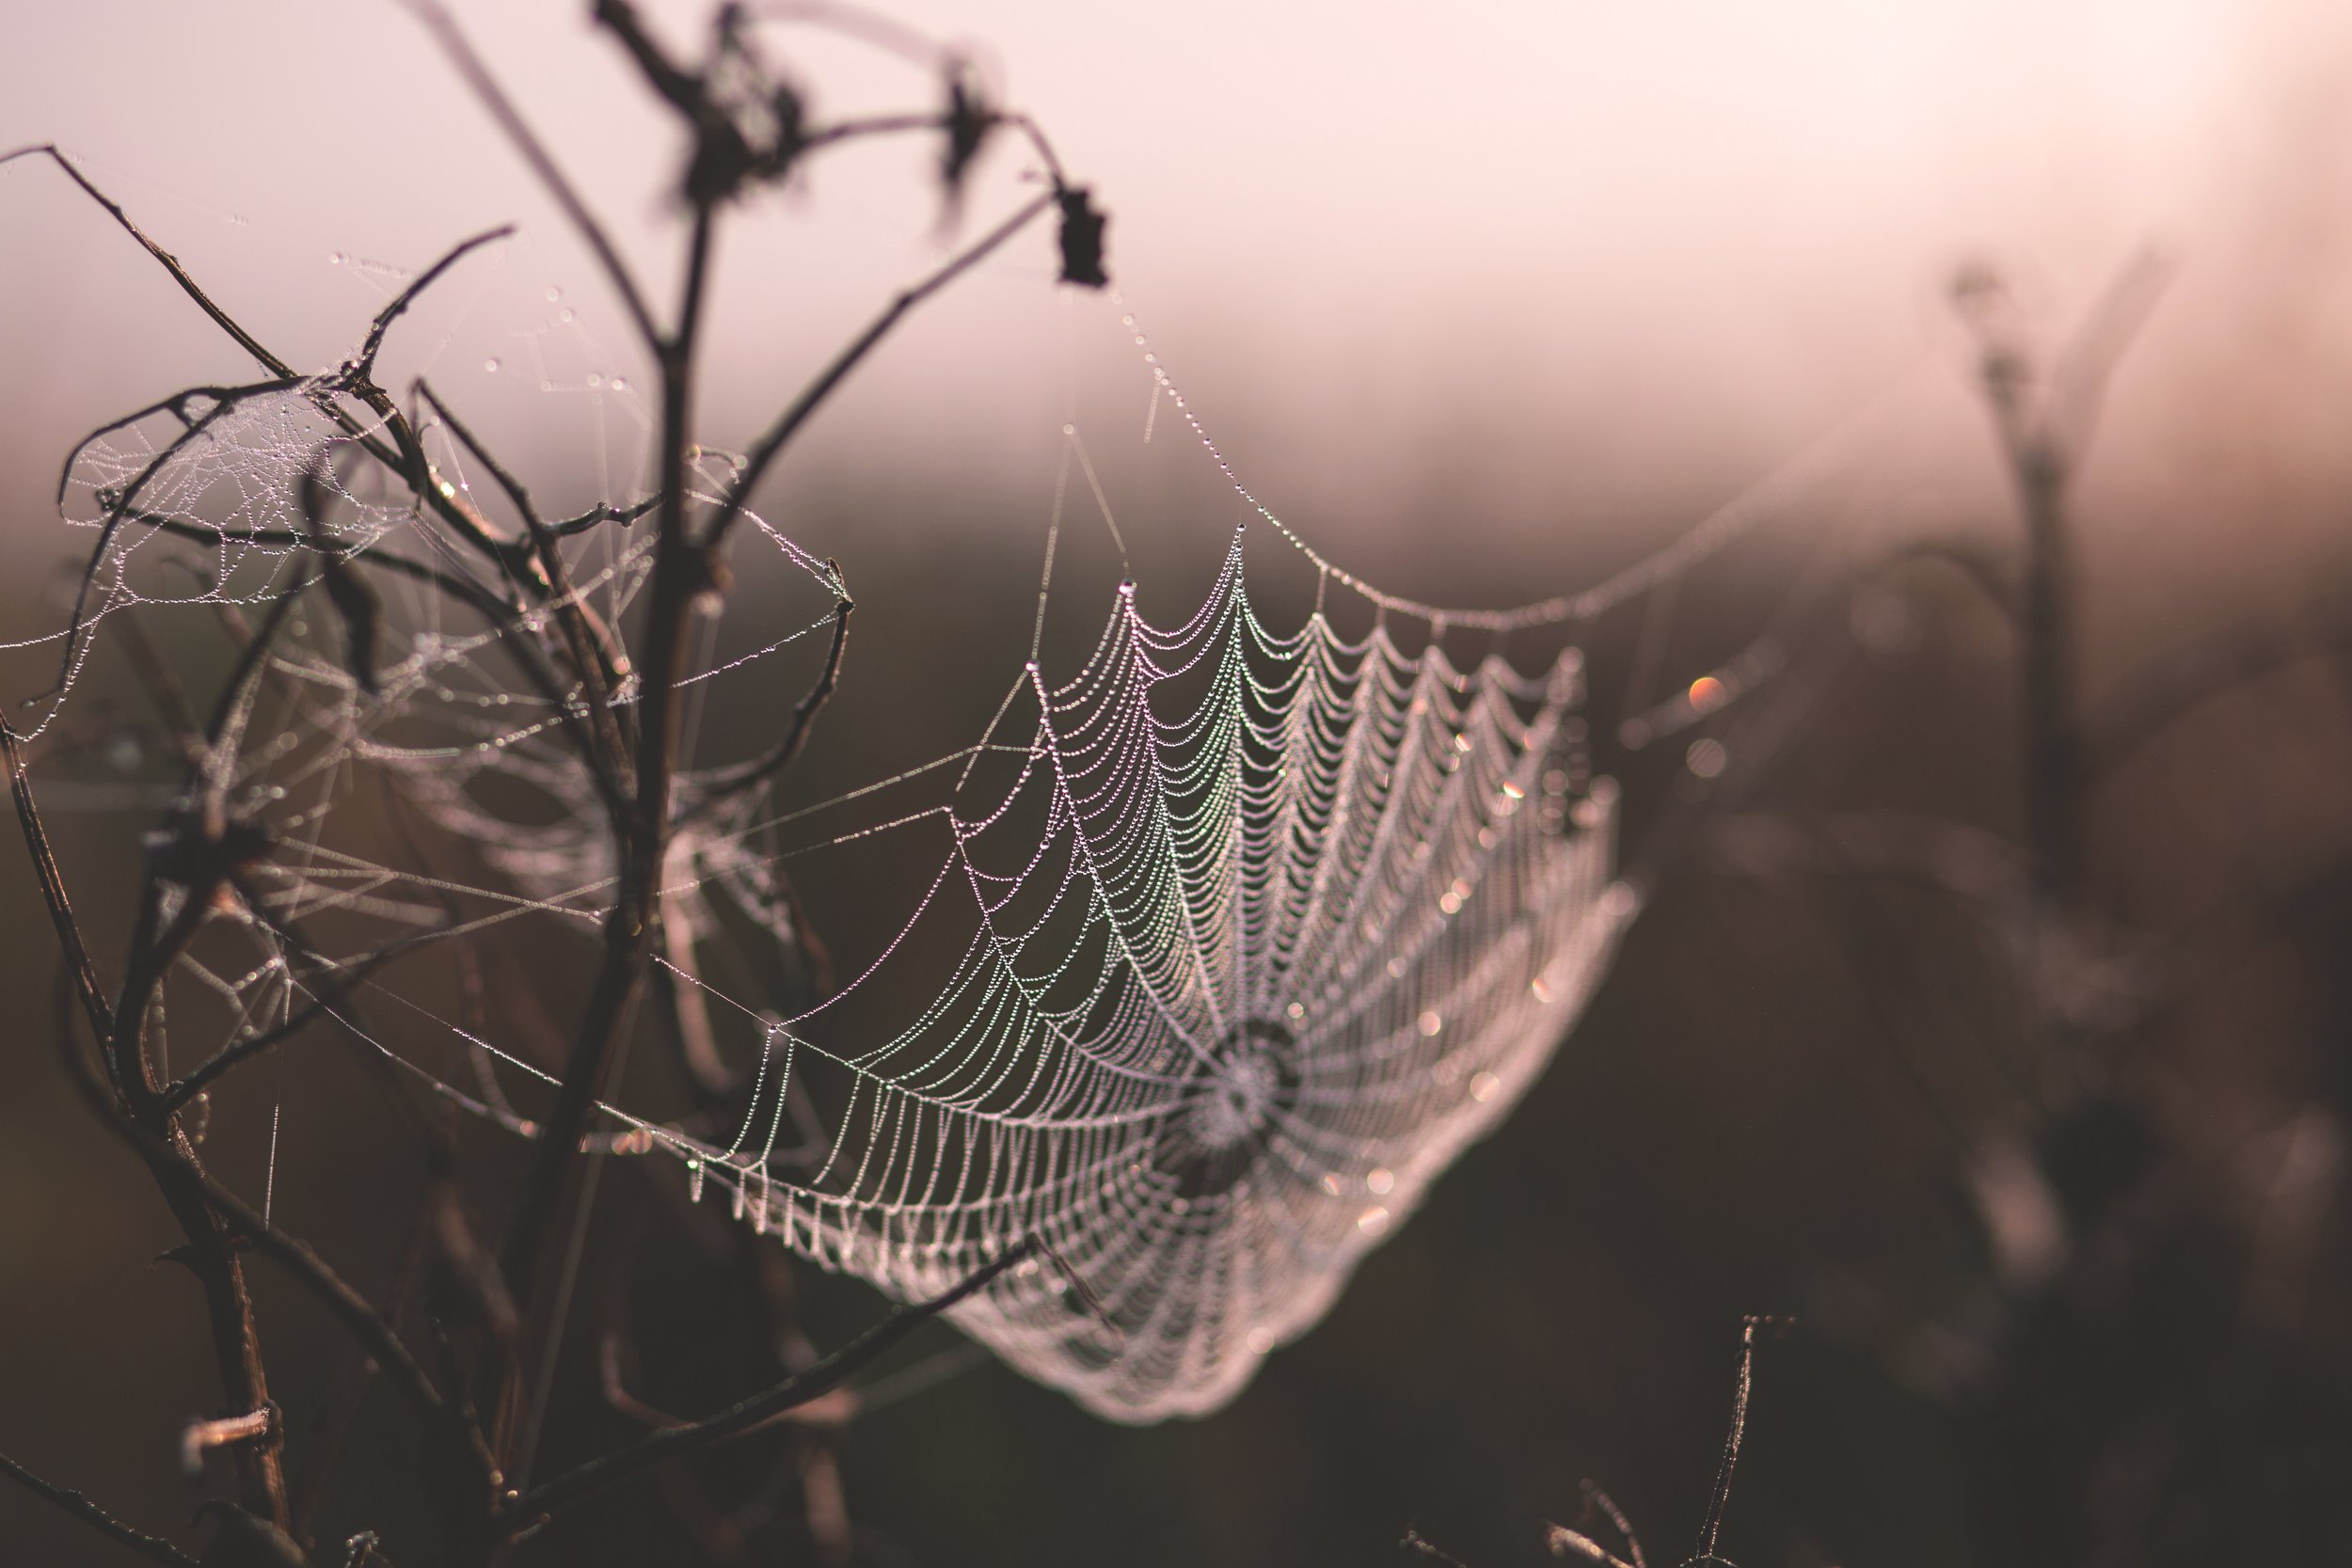 Cobwebs. Delicate. Strong. Layered. Remove non-essential.